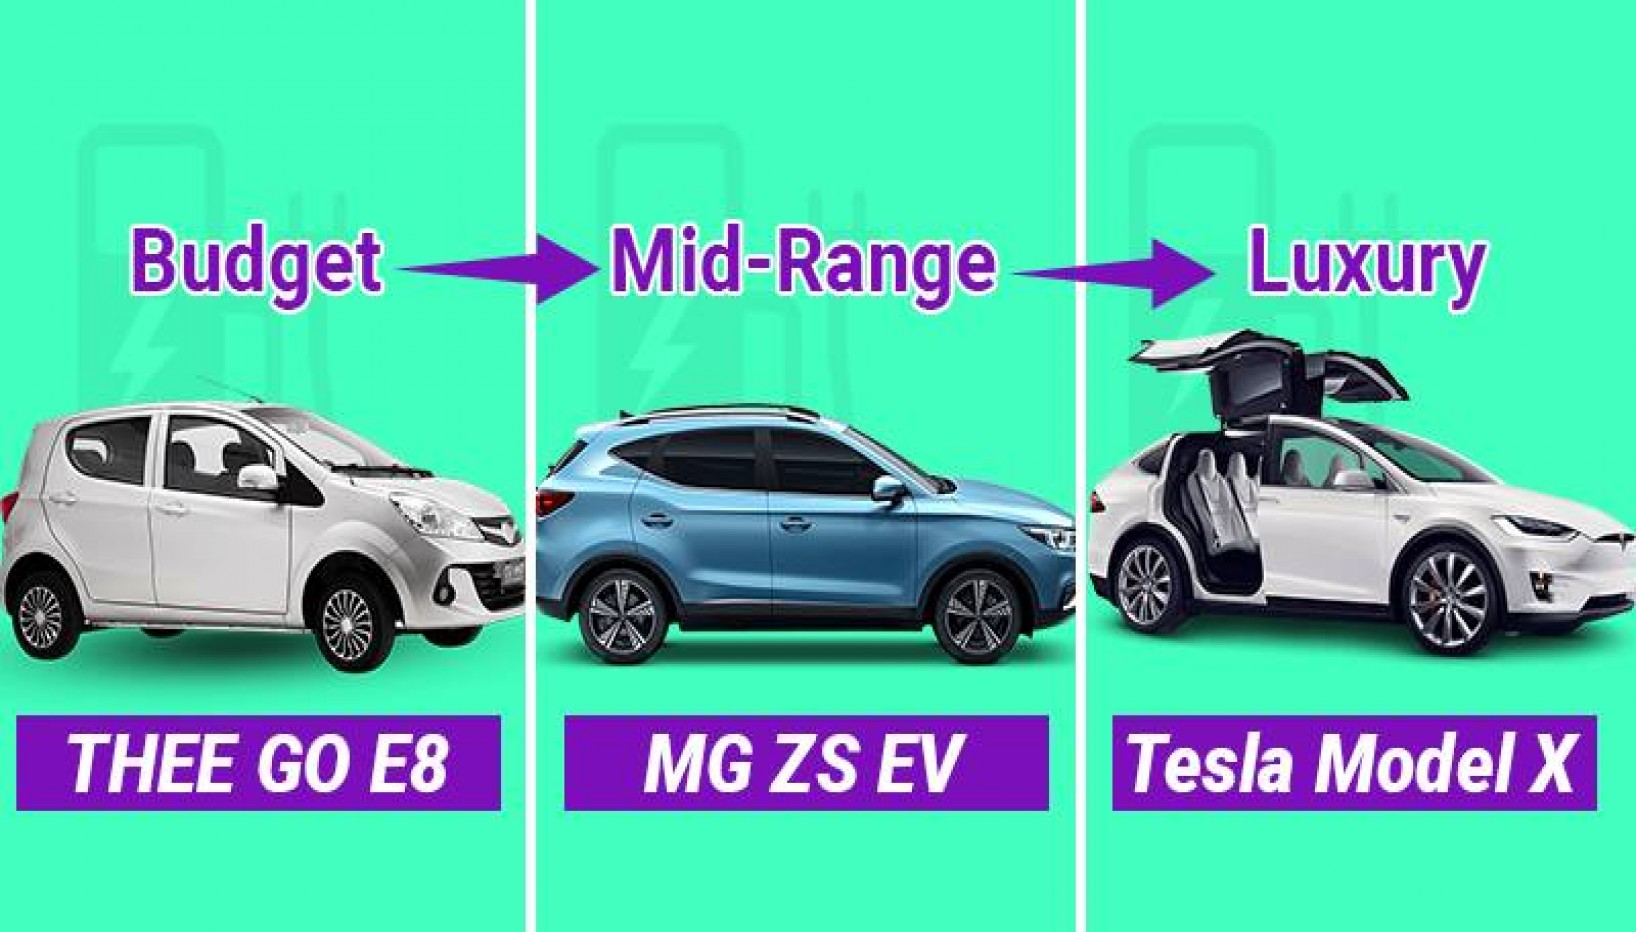 EV Prices In Nepal — From High To Low